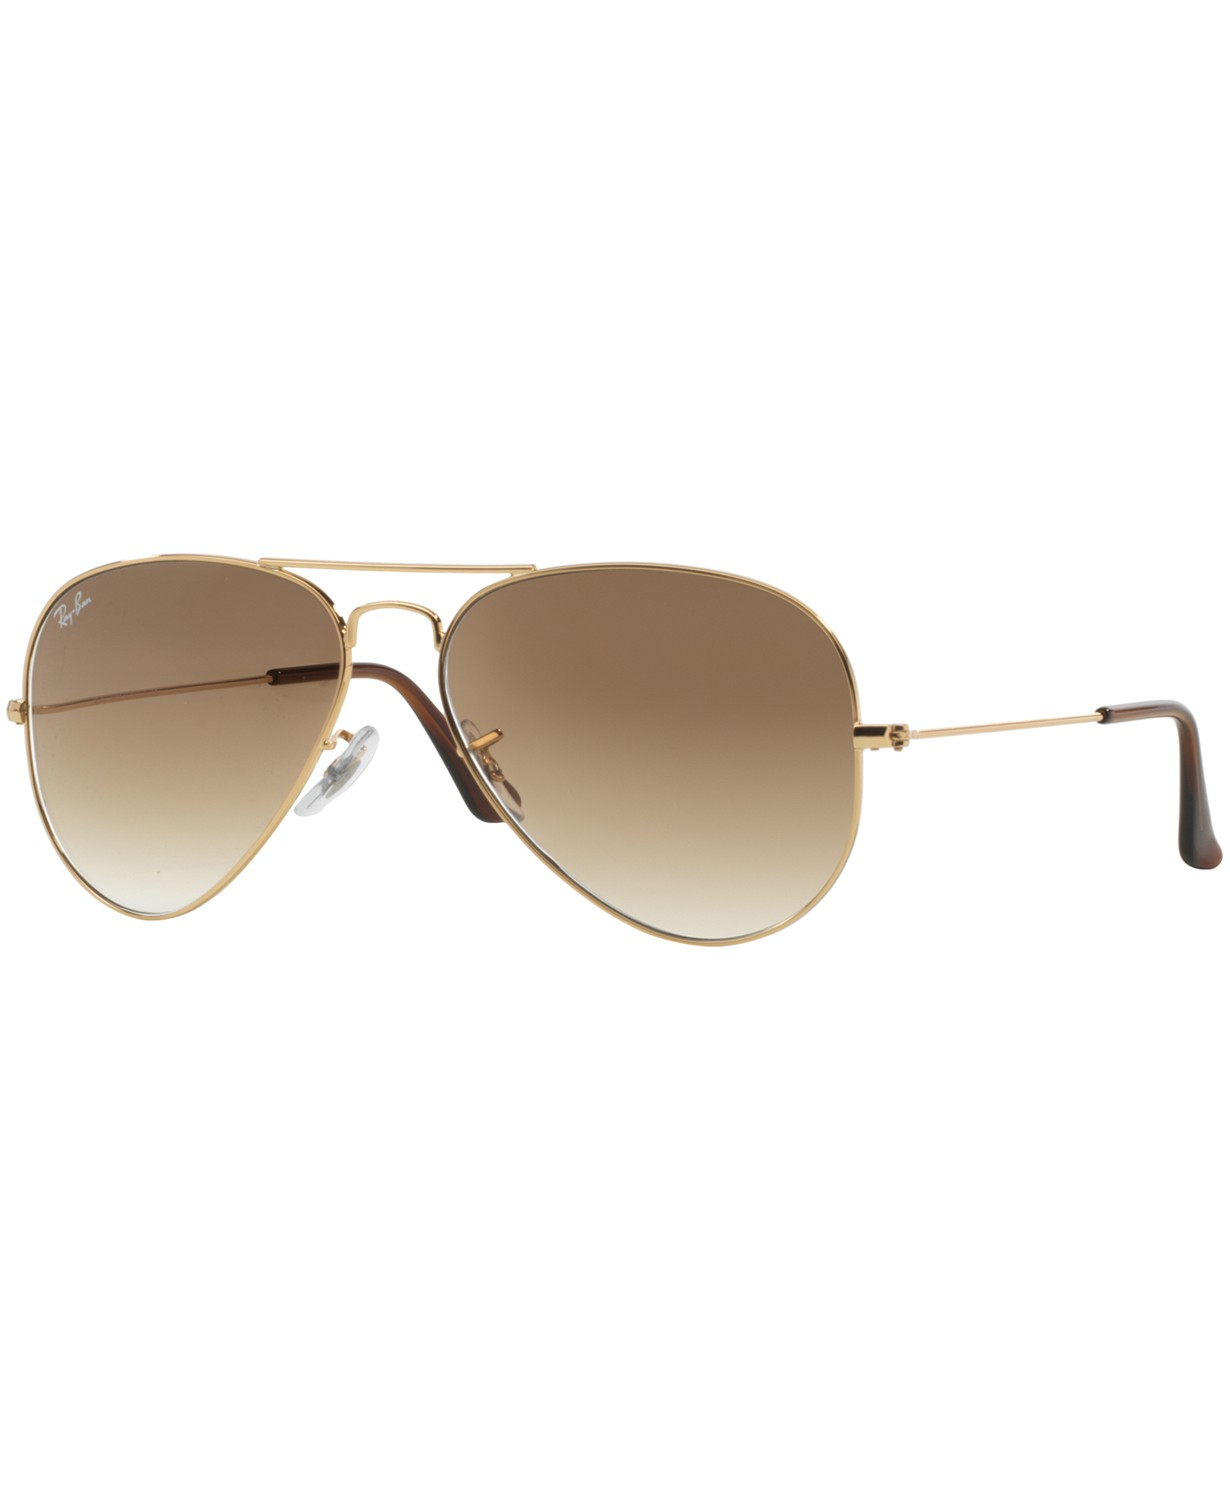 promotion ray ban